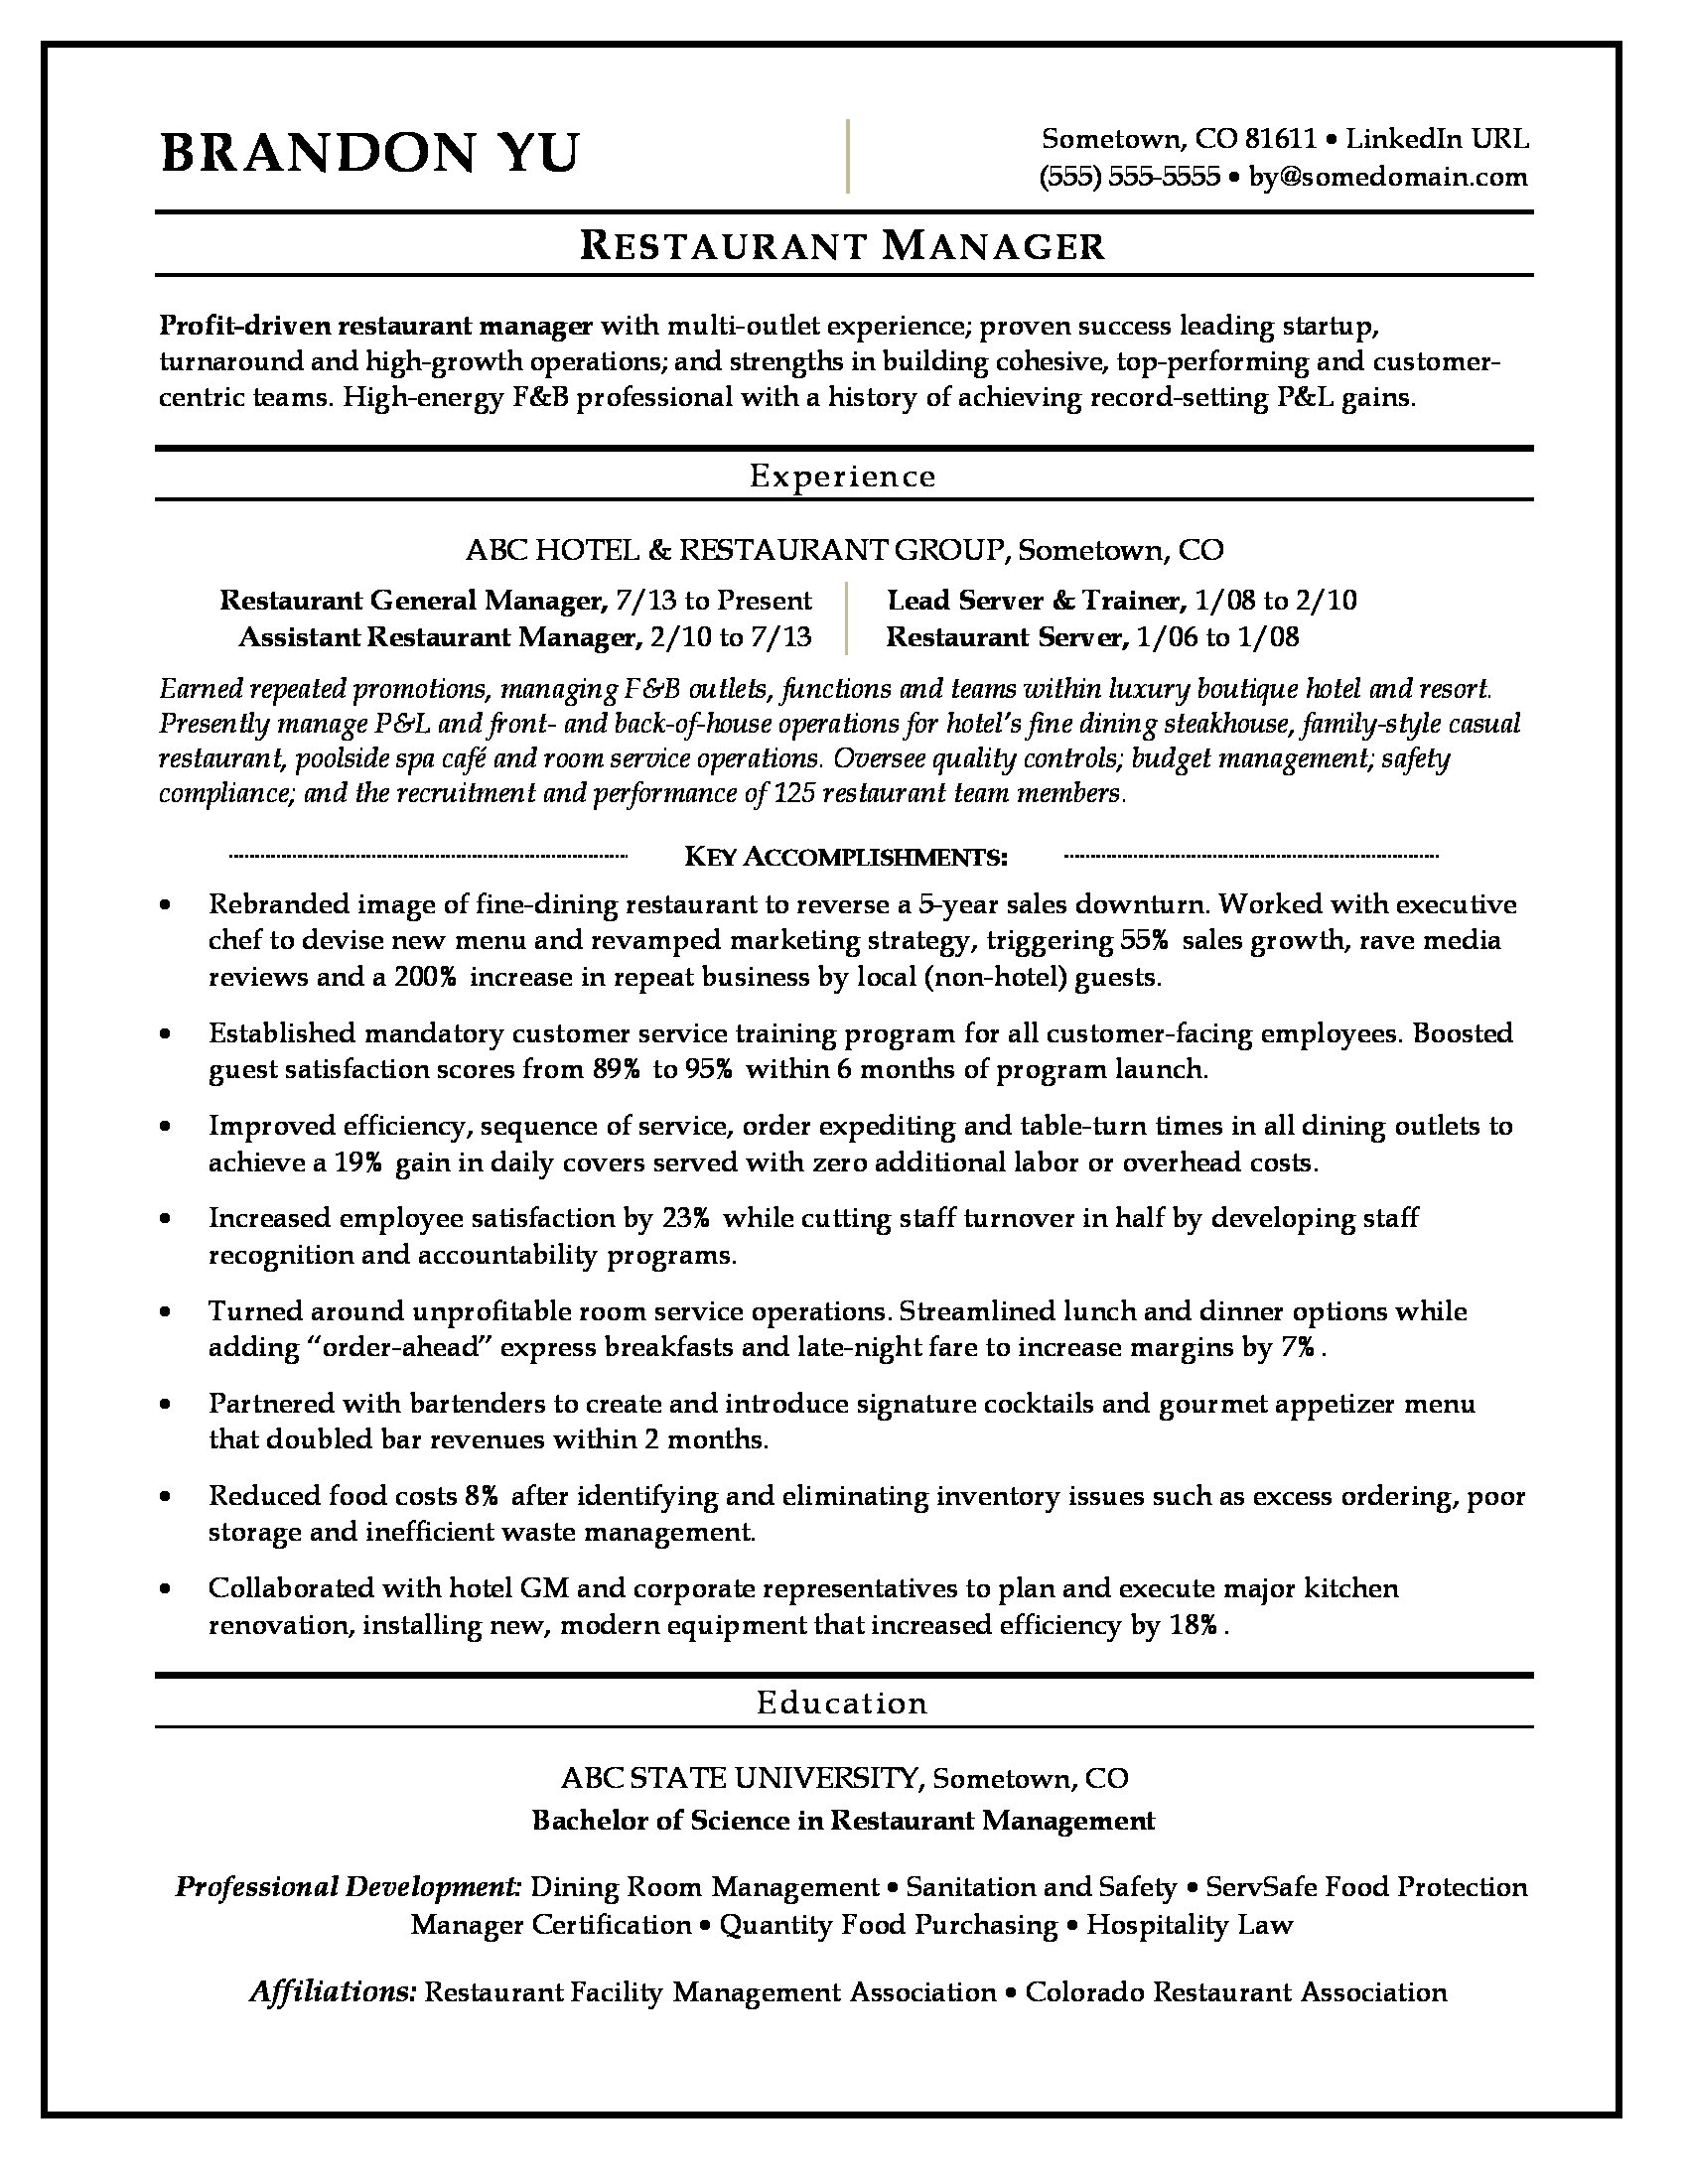 restaurant manager resume sample monster fast food the outsiders chapters judicial Resume Fast Food Restaurant Resume